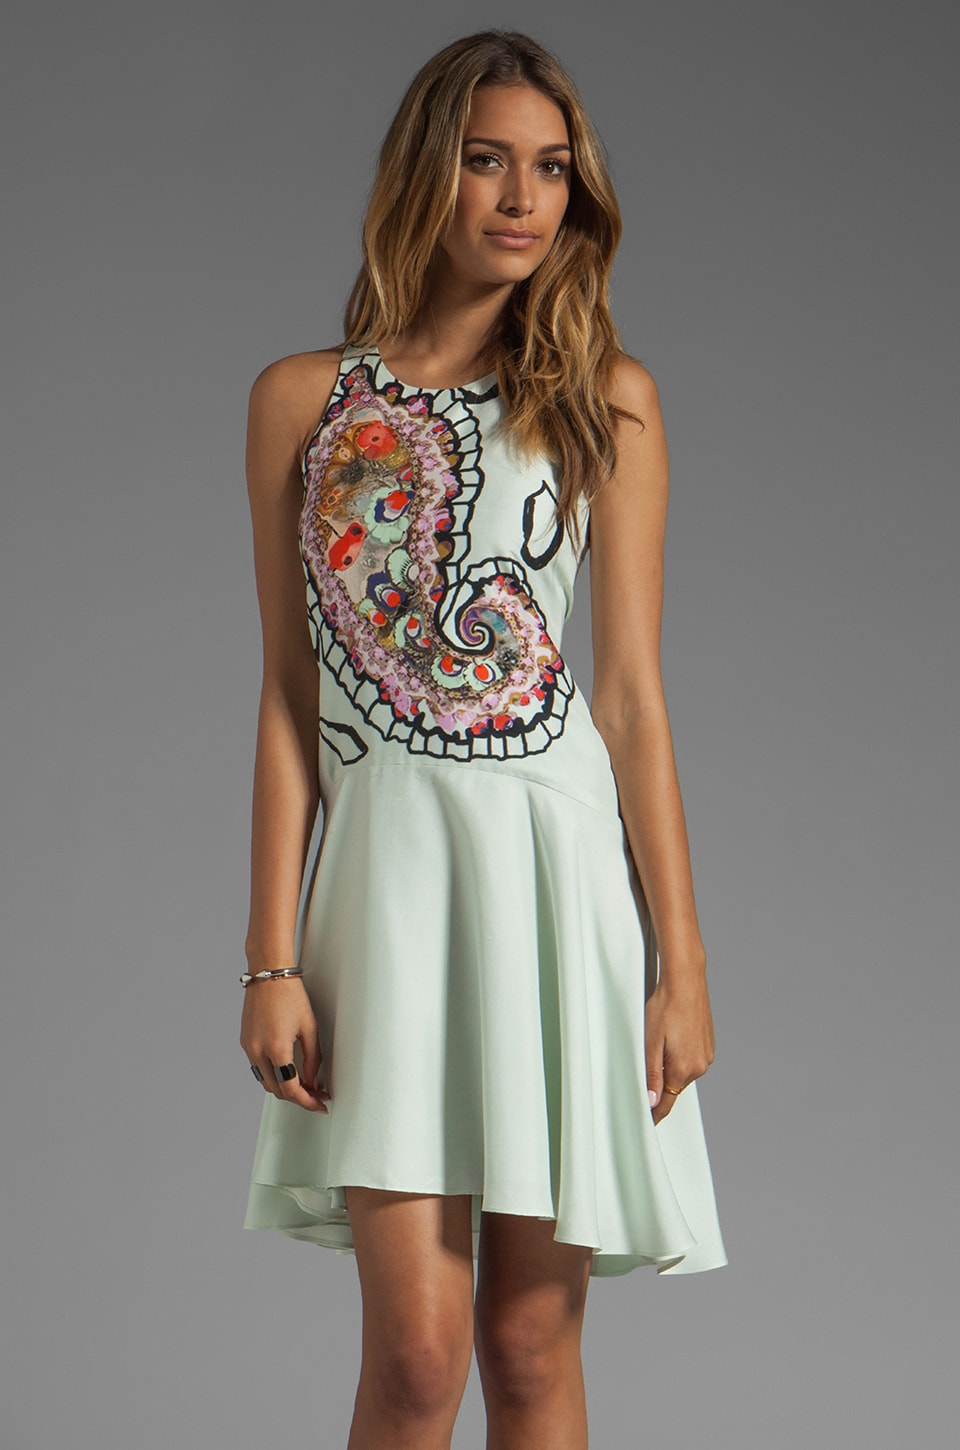 Cynthia Rowley Magnified Paisley Halter Dress in Mint